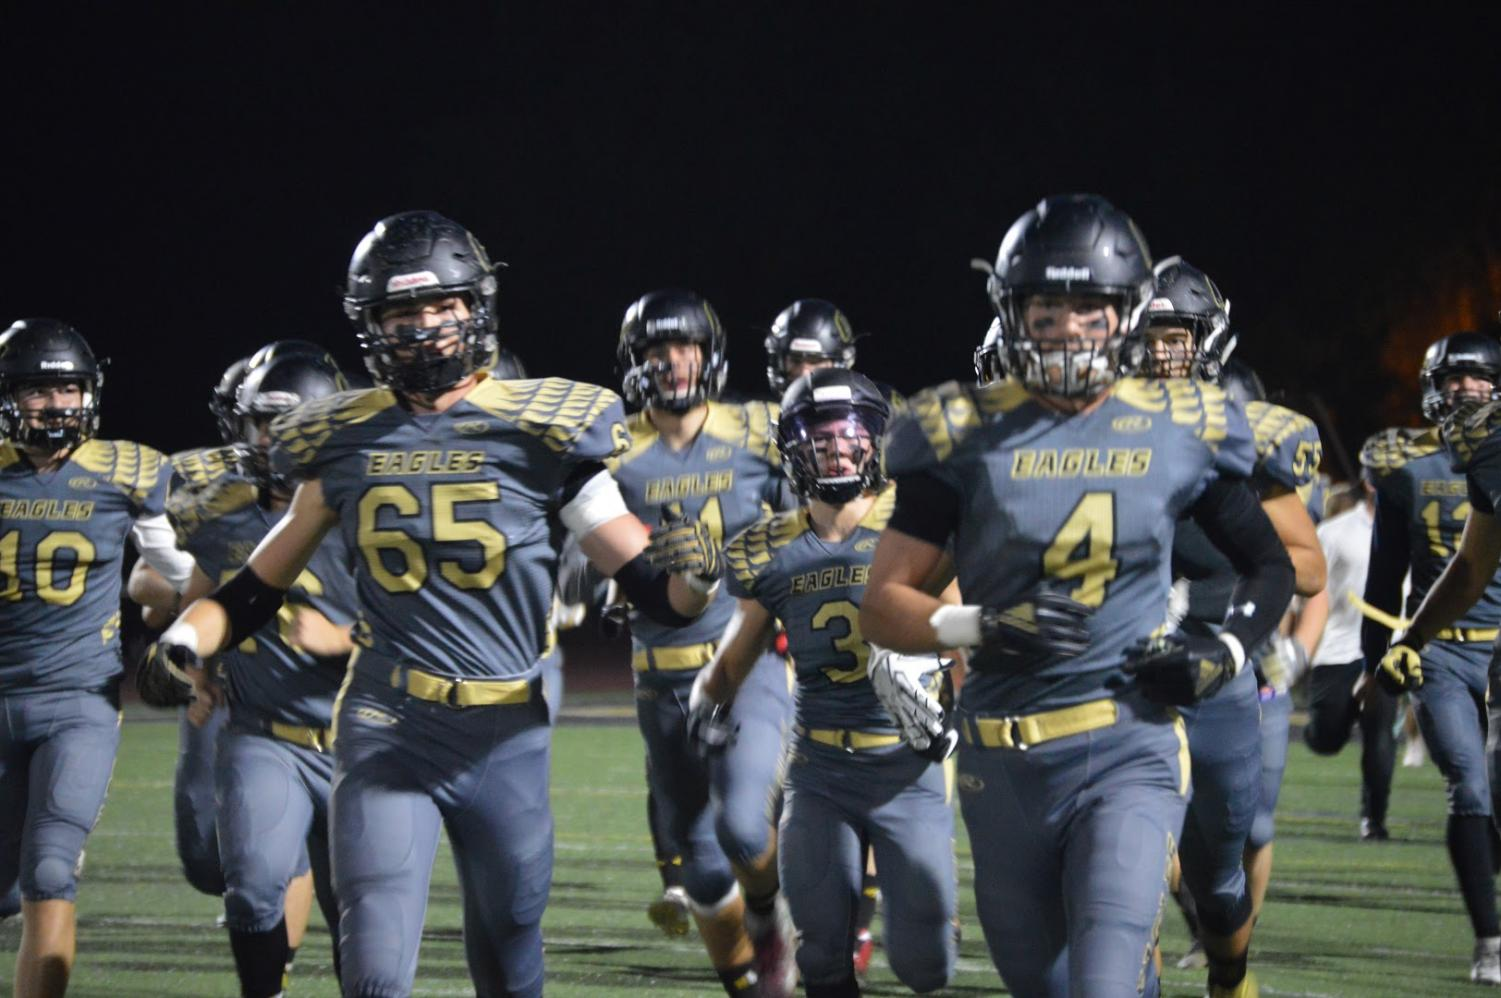 With a new defense system under their belts, the varsity Eagles have become undefeated league champions with their 9-0 record during the season.